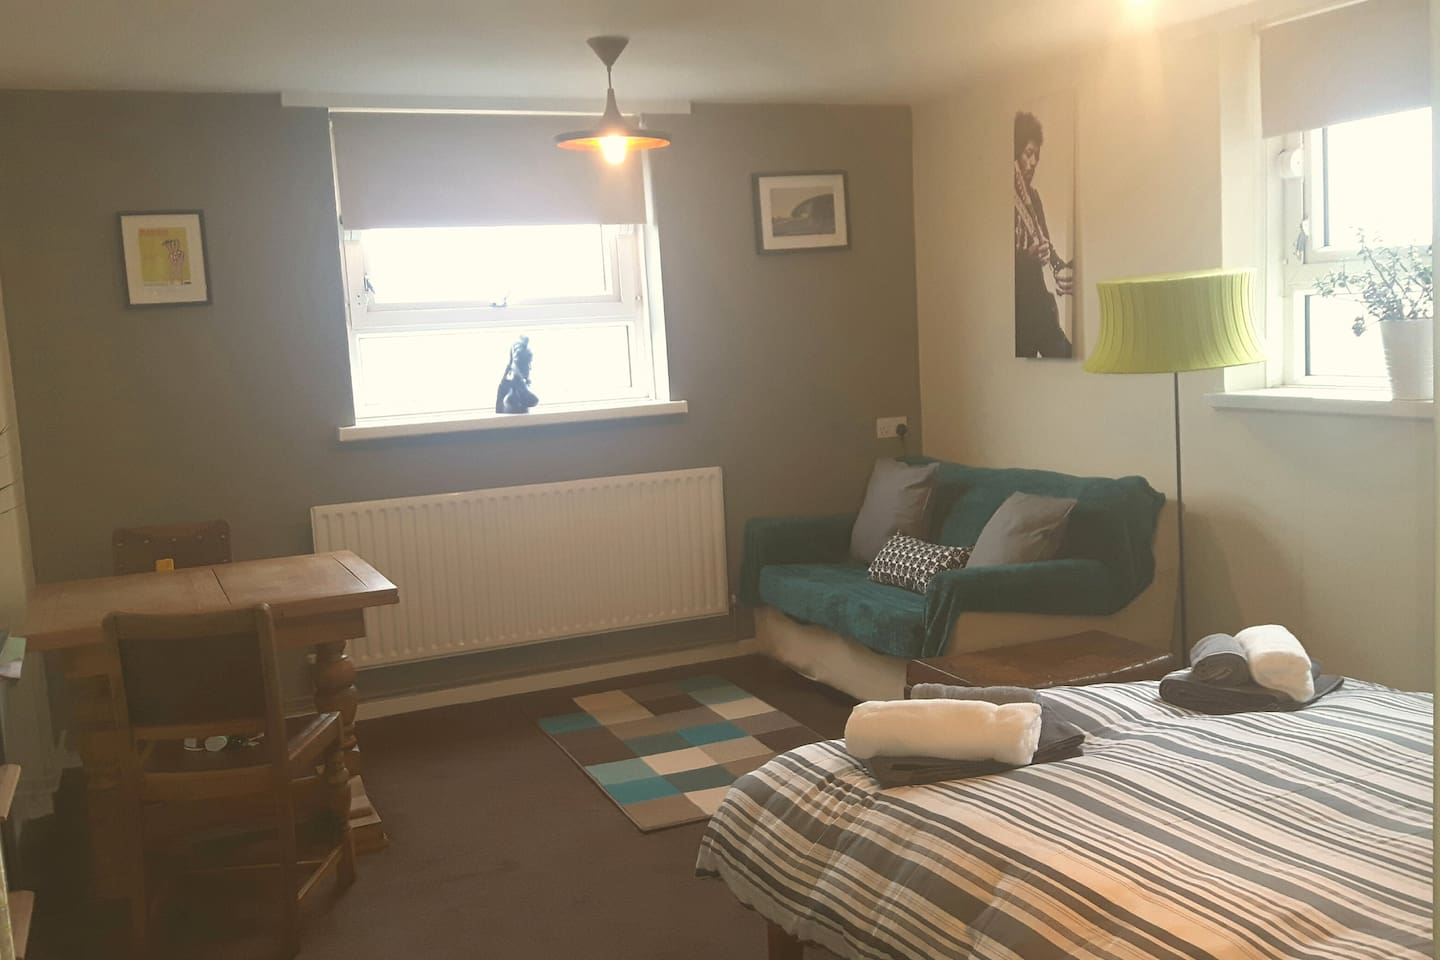 Spacious living area with double bed and two seater sofa bed & dining table.